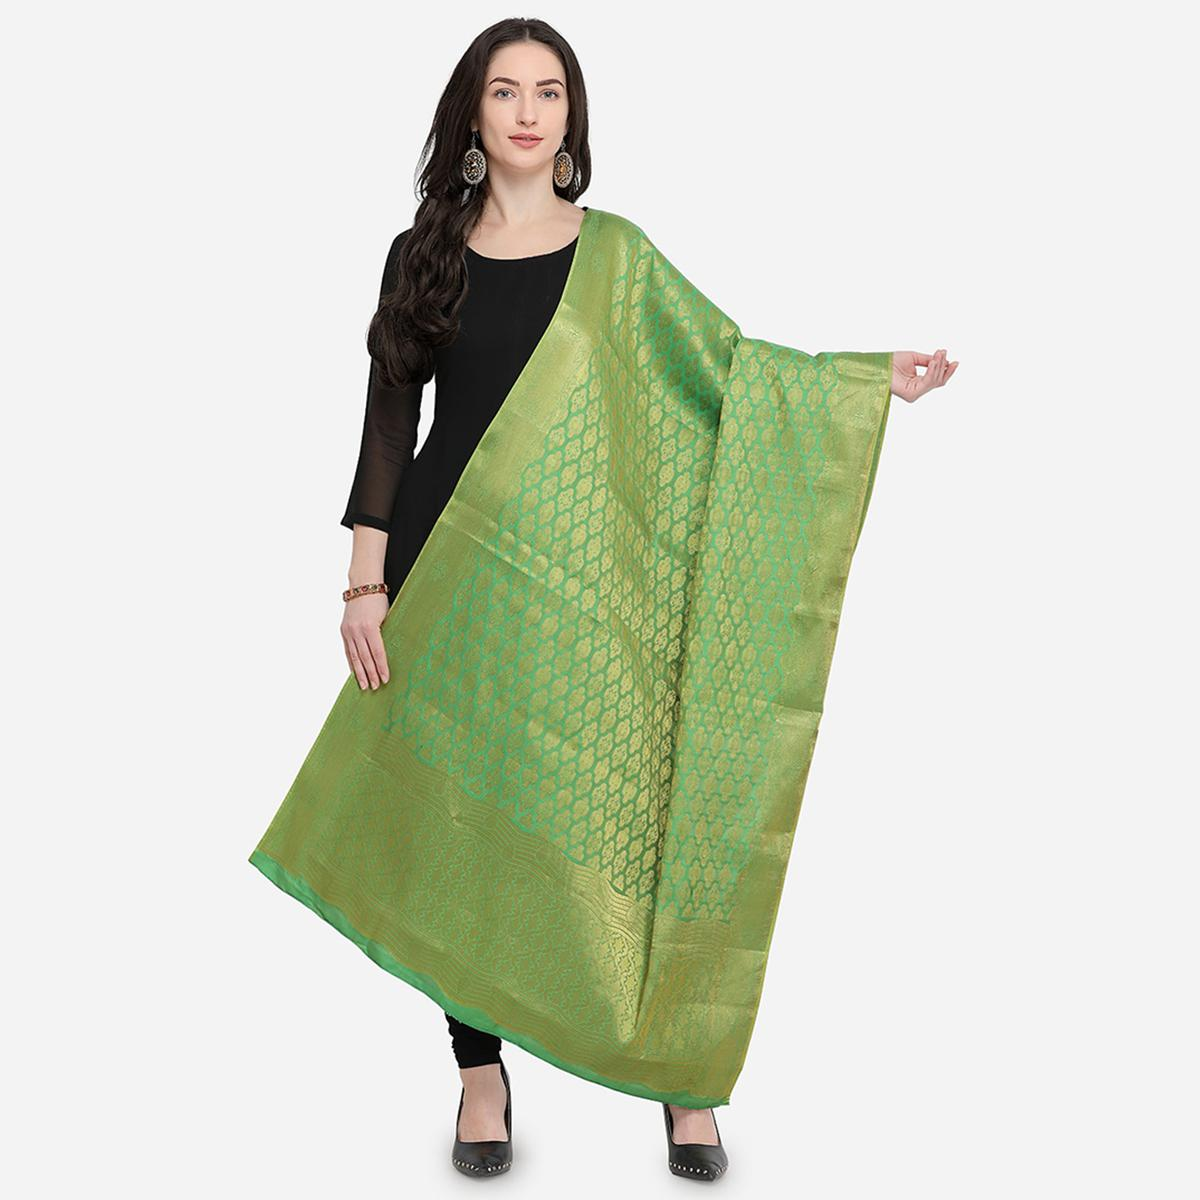 Pleasant Green Colored Festive Wear Jacquard Banarasi Silk Dupatta